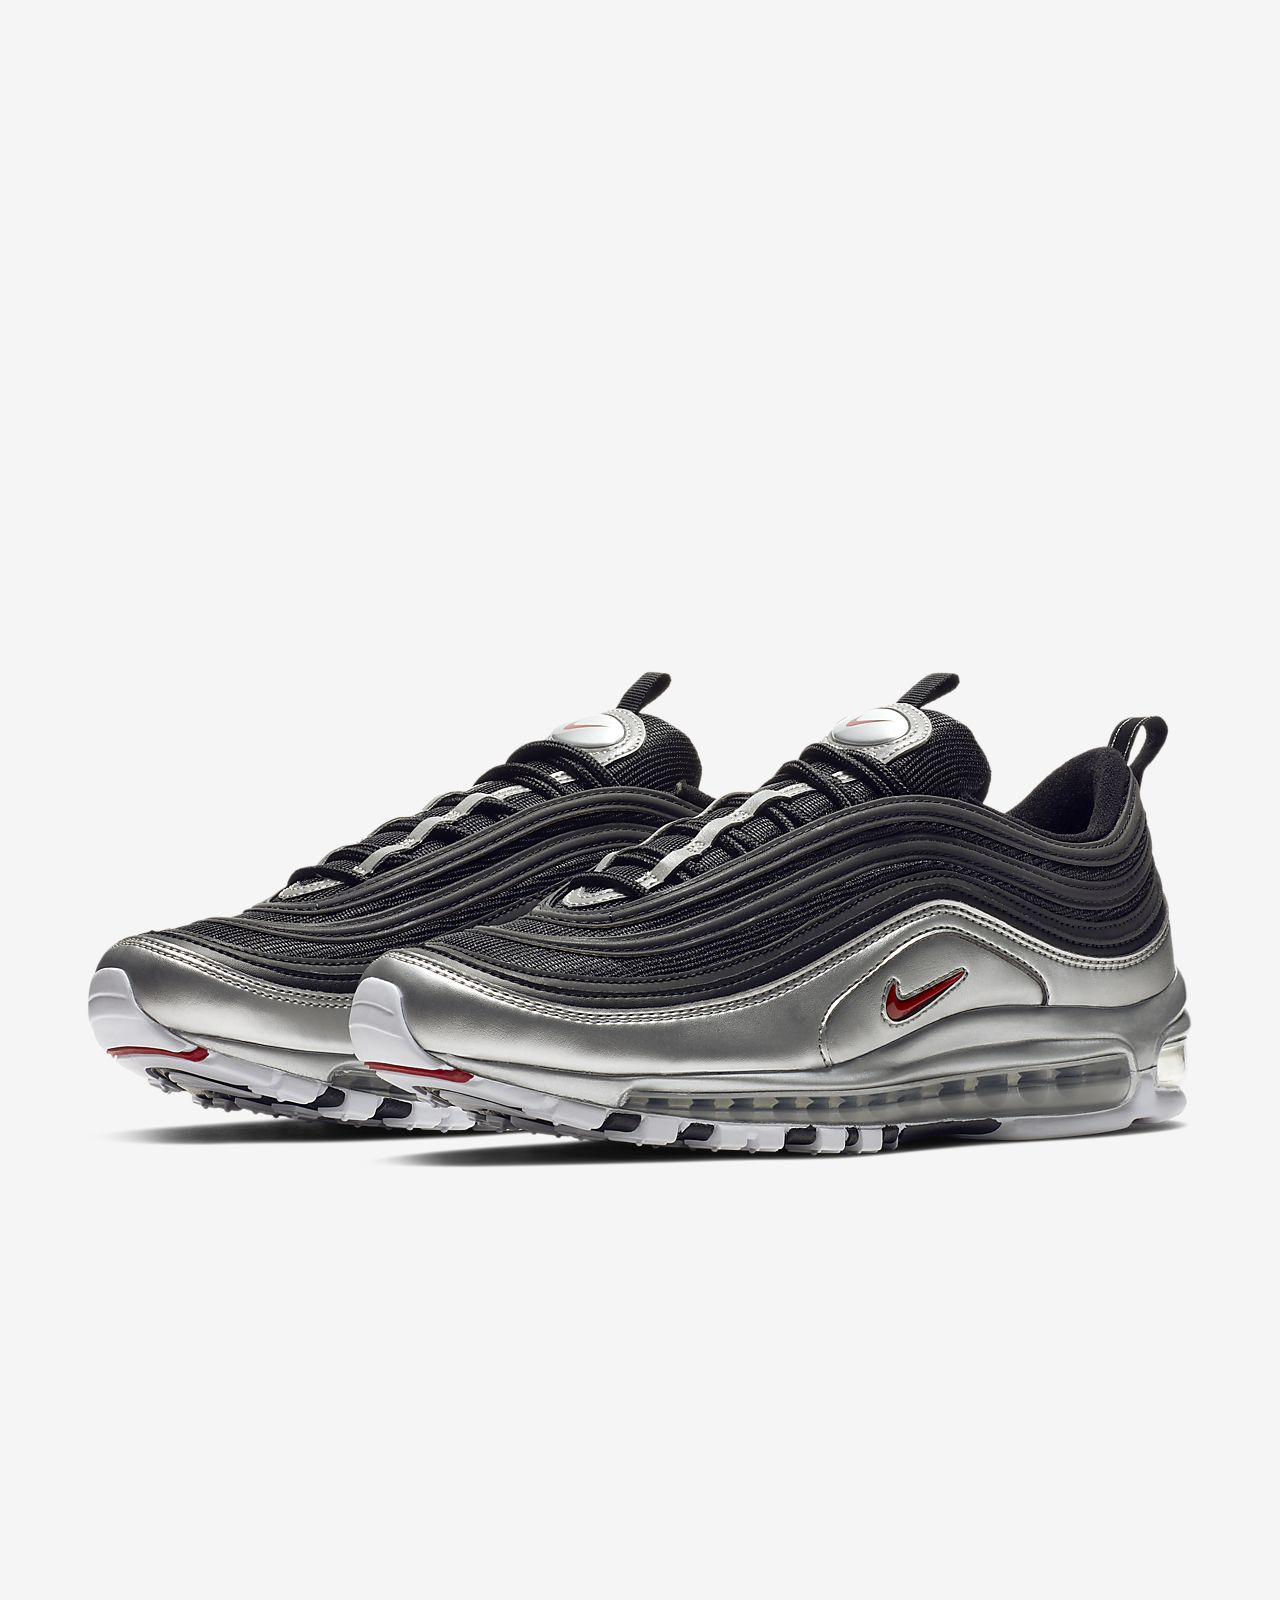 ae721623a Nike Air Max 97 QS Men s Shoe. Nike.com